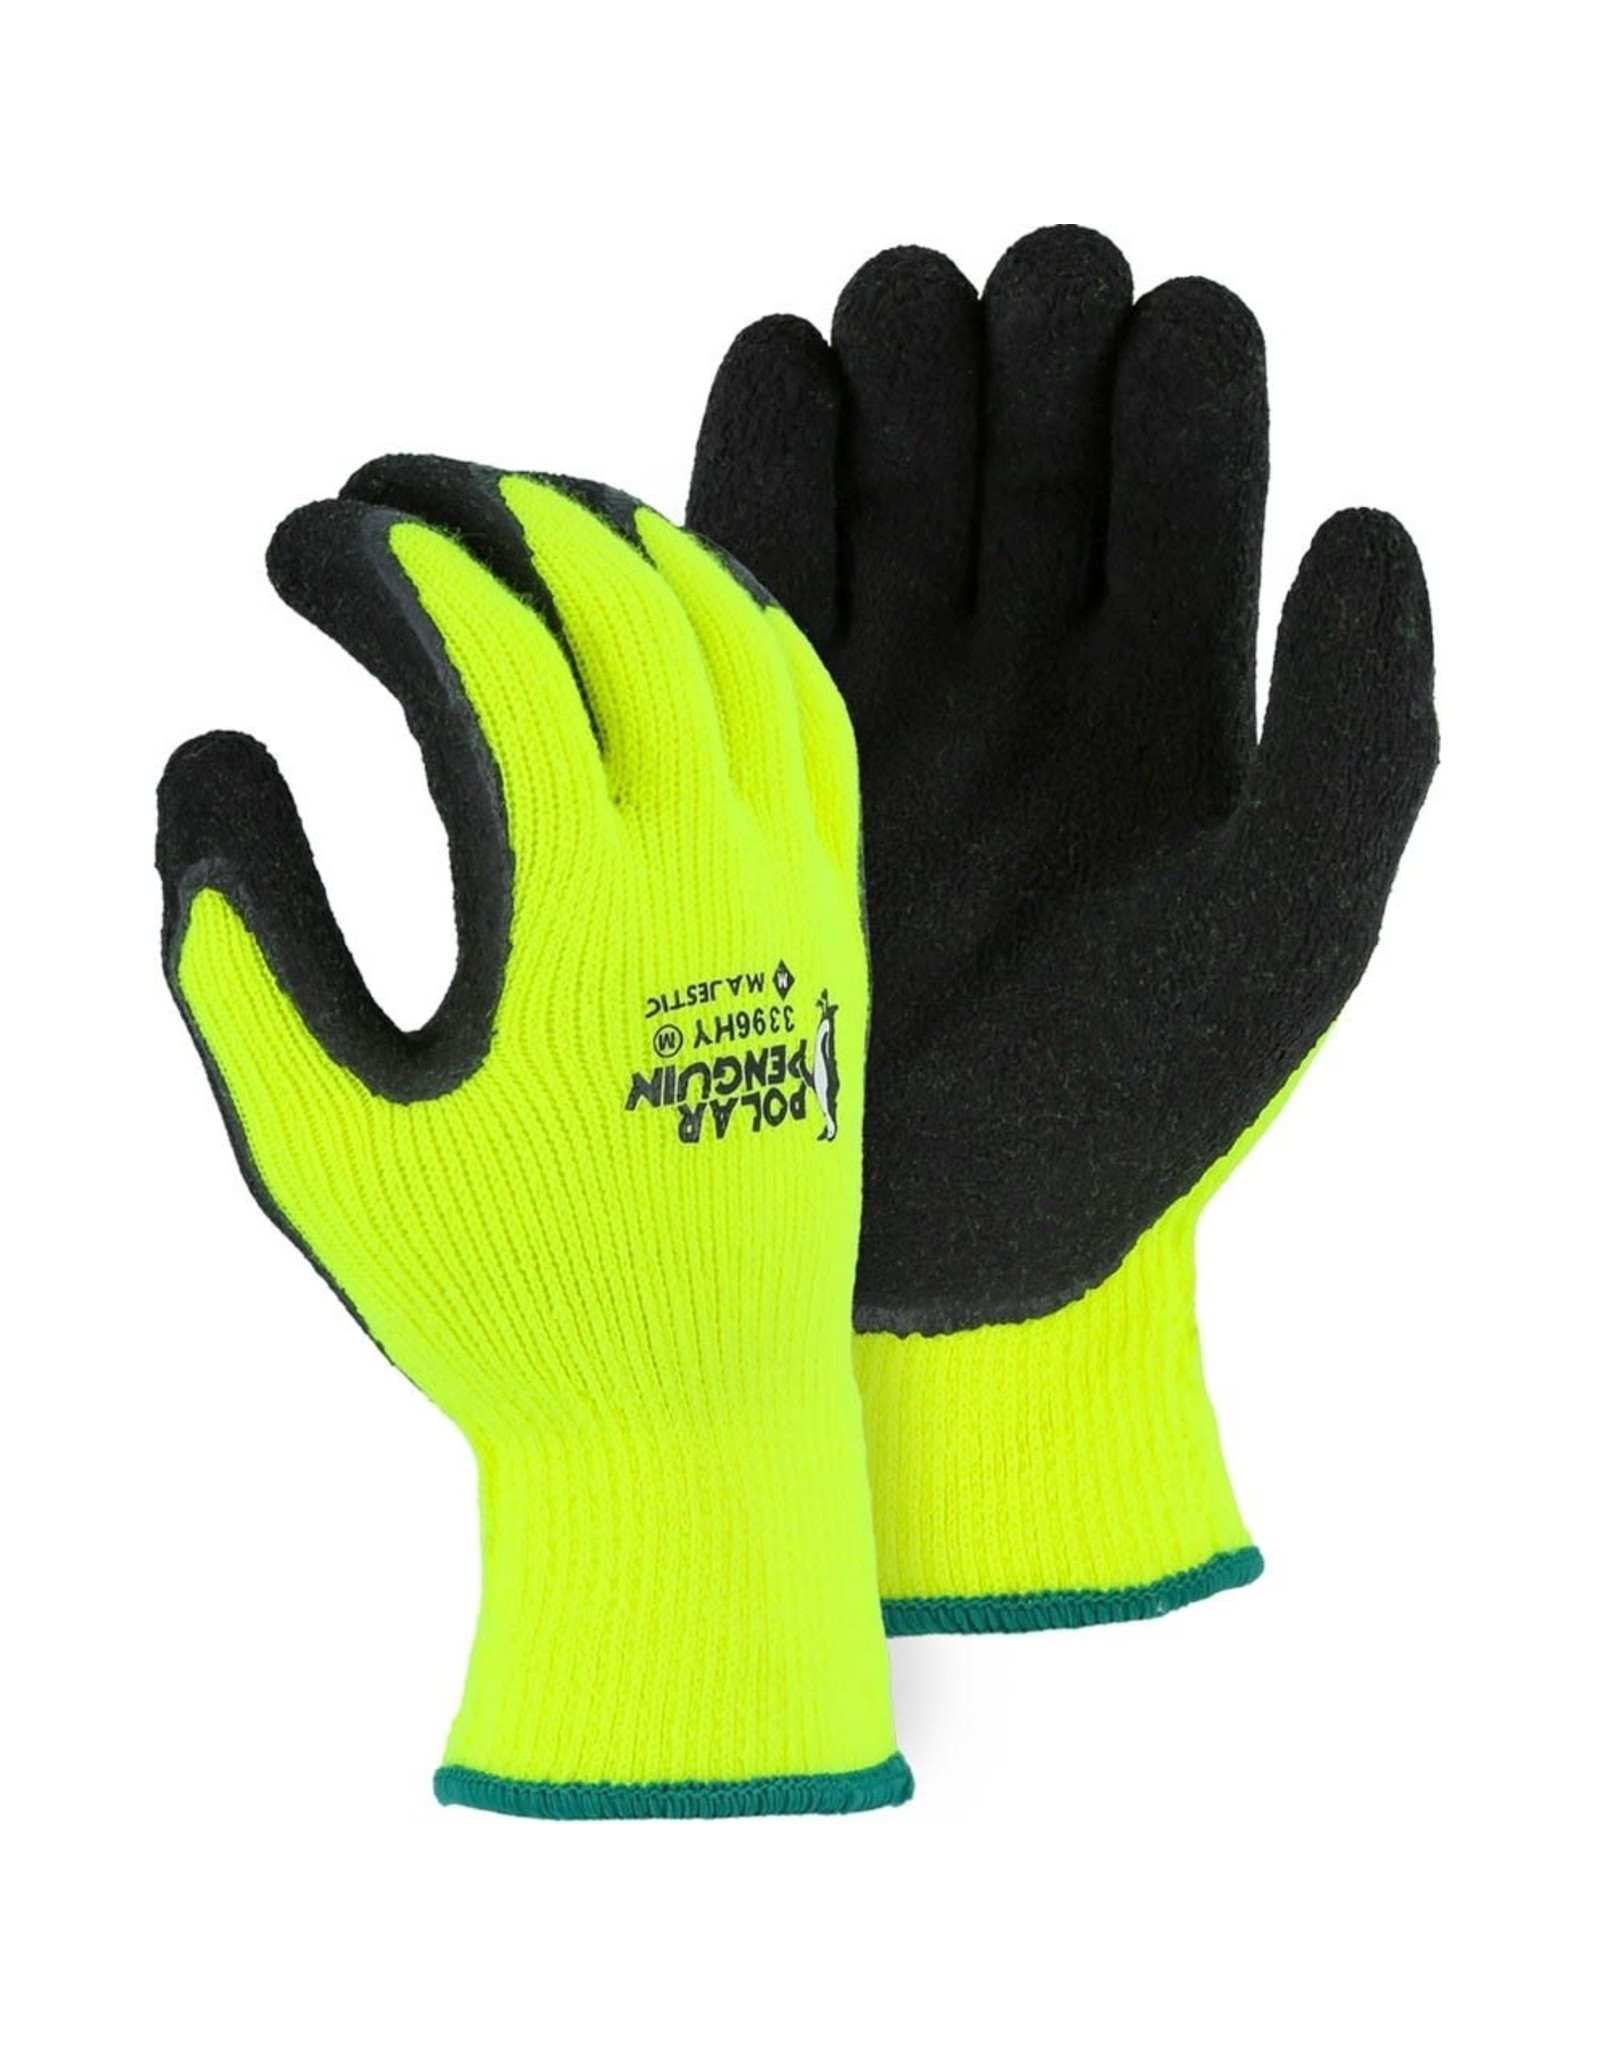 Majestic Glove Polar Penguin Winter Lined Napped Terry Glove with Foam Latex Dipped Palm